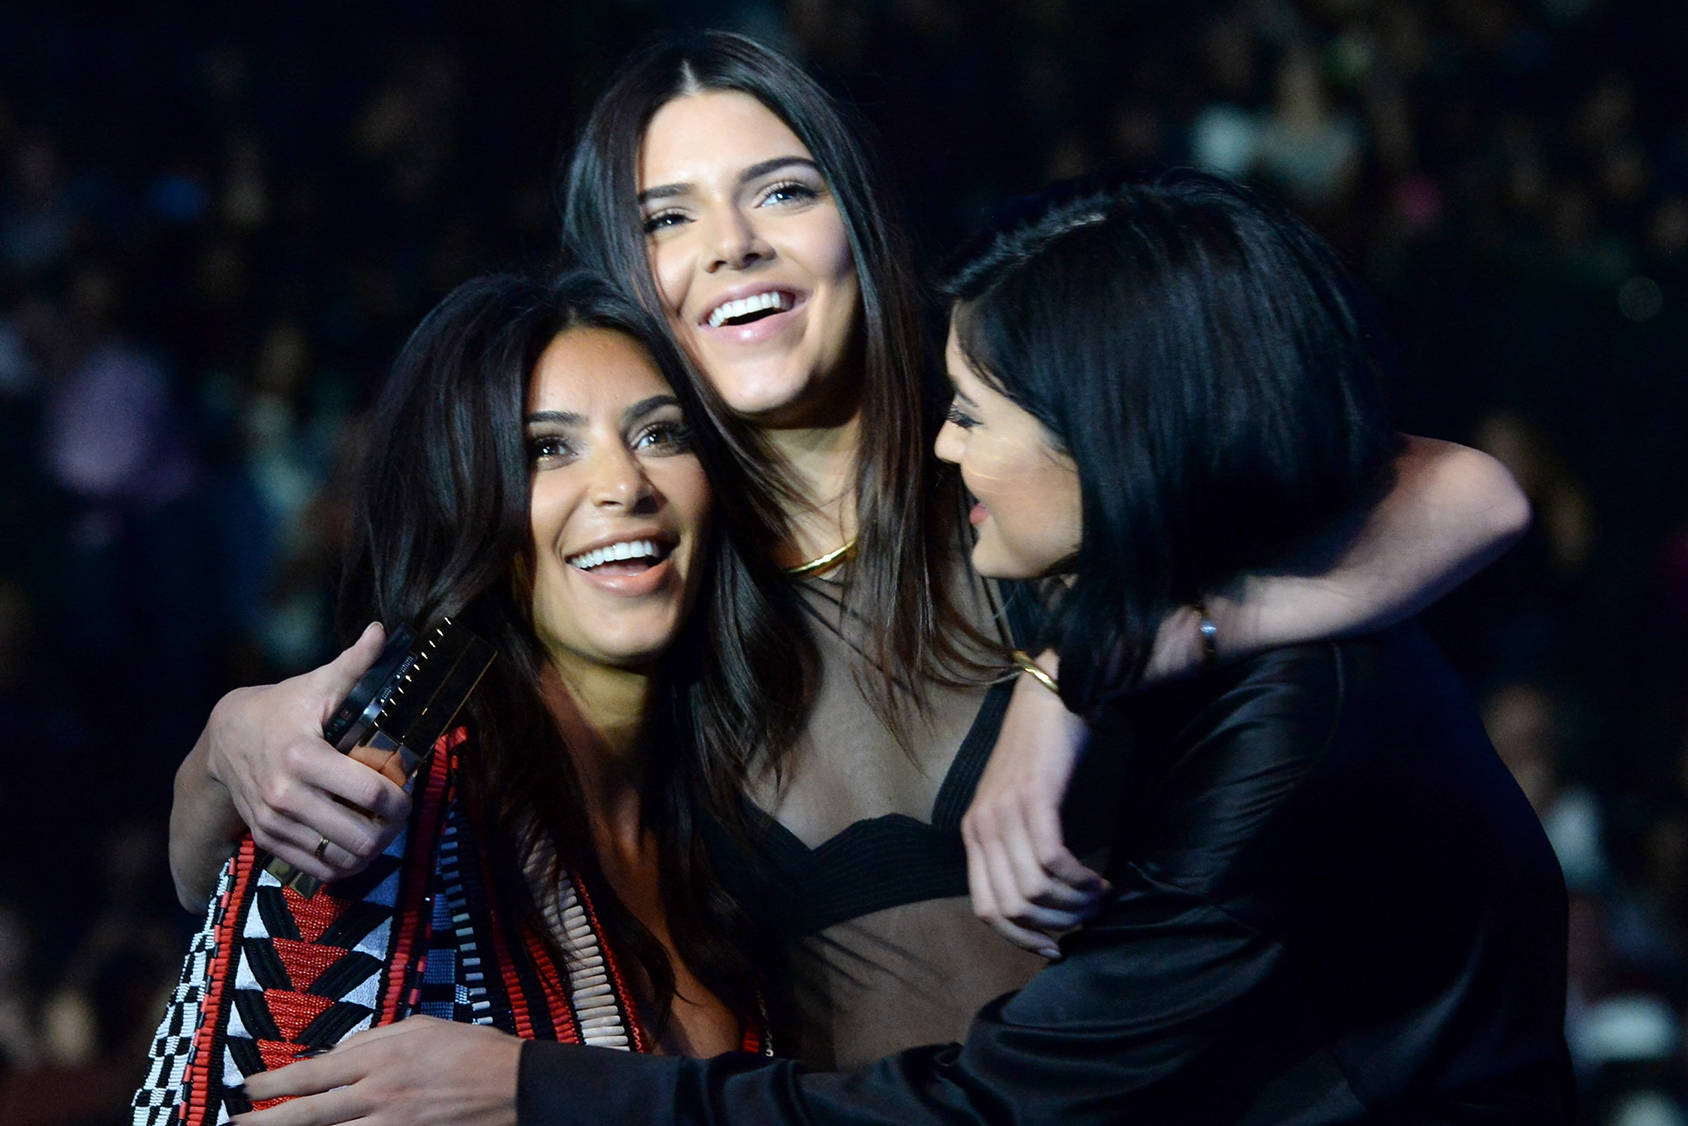 Sisters Kim Kardashian, Kendall Jenner and Kylie Jenner, Getty Images.